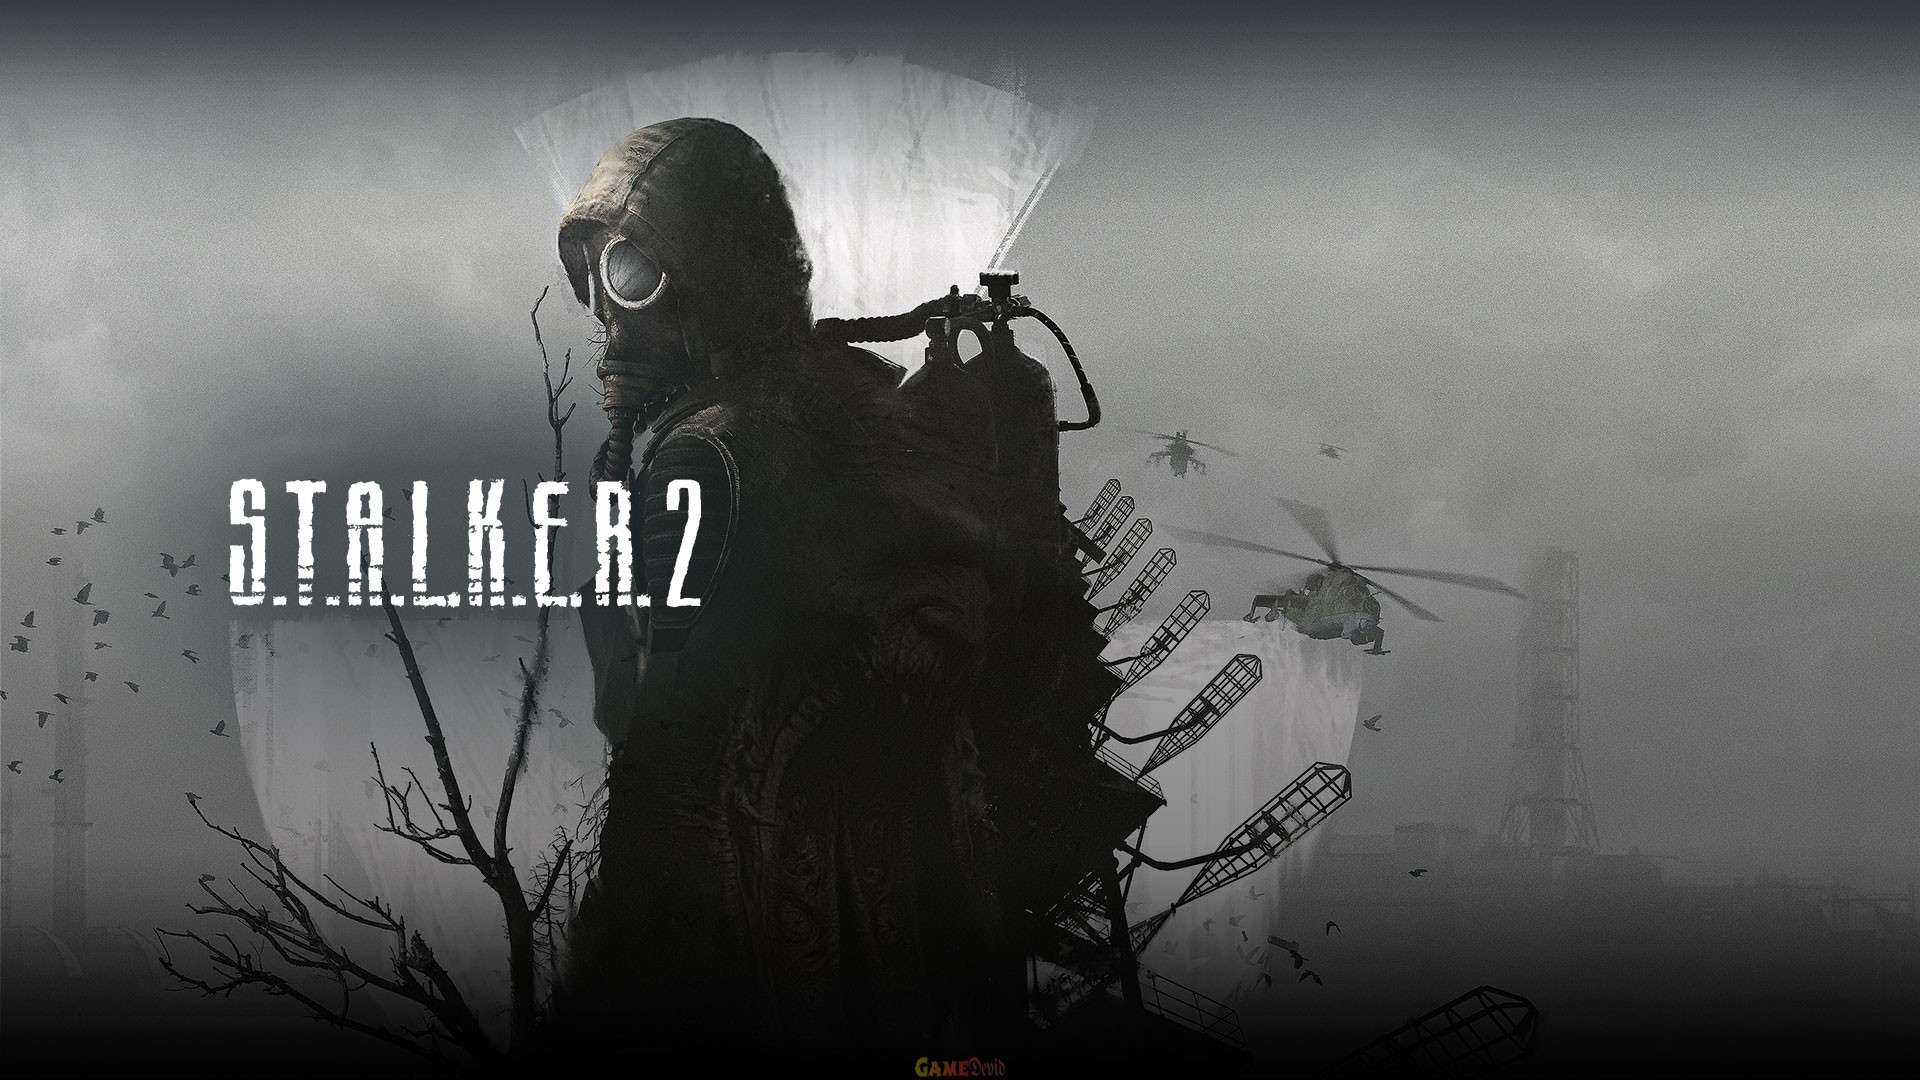 S.T.A.L.K.E.R. 2 Download Mobile Android Version Games